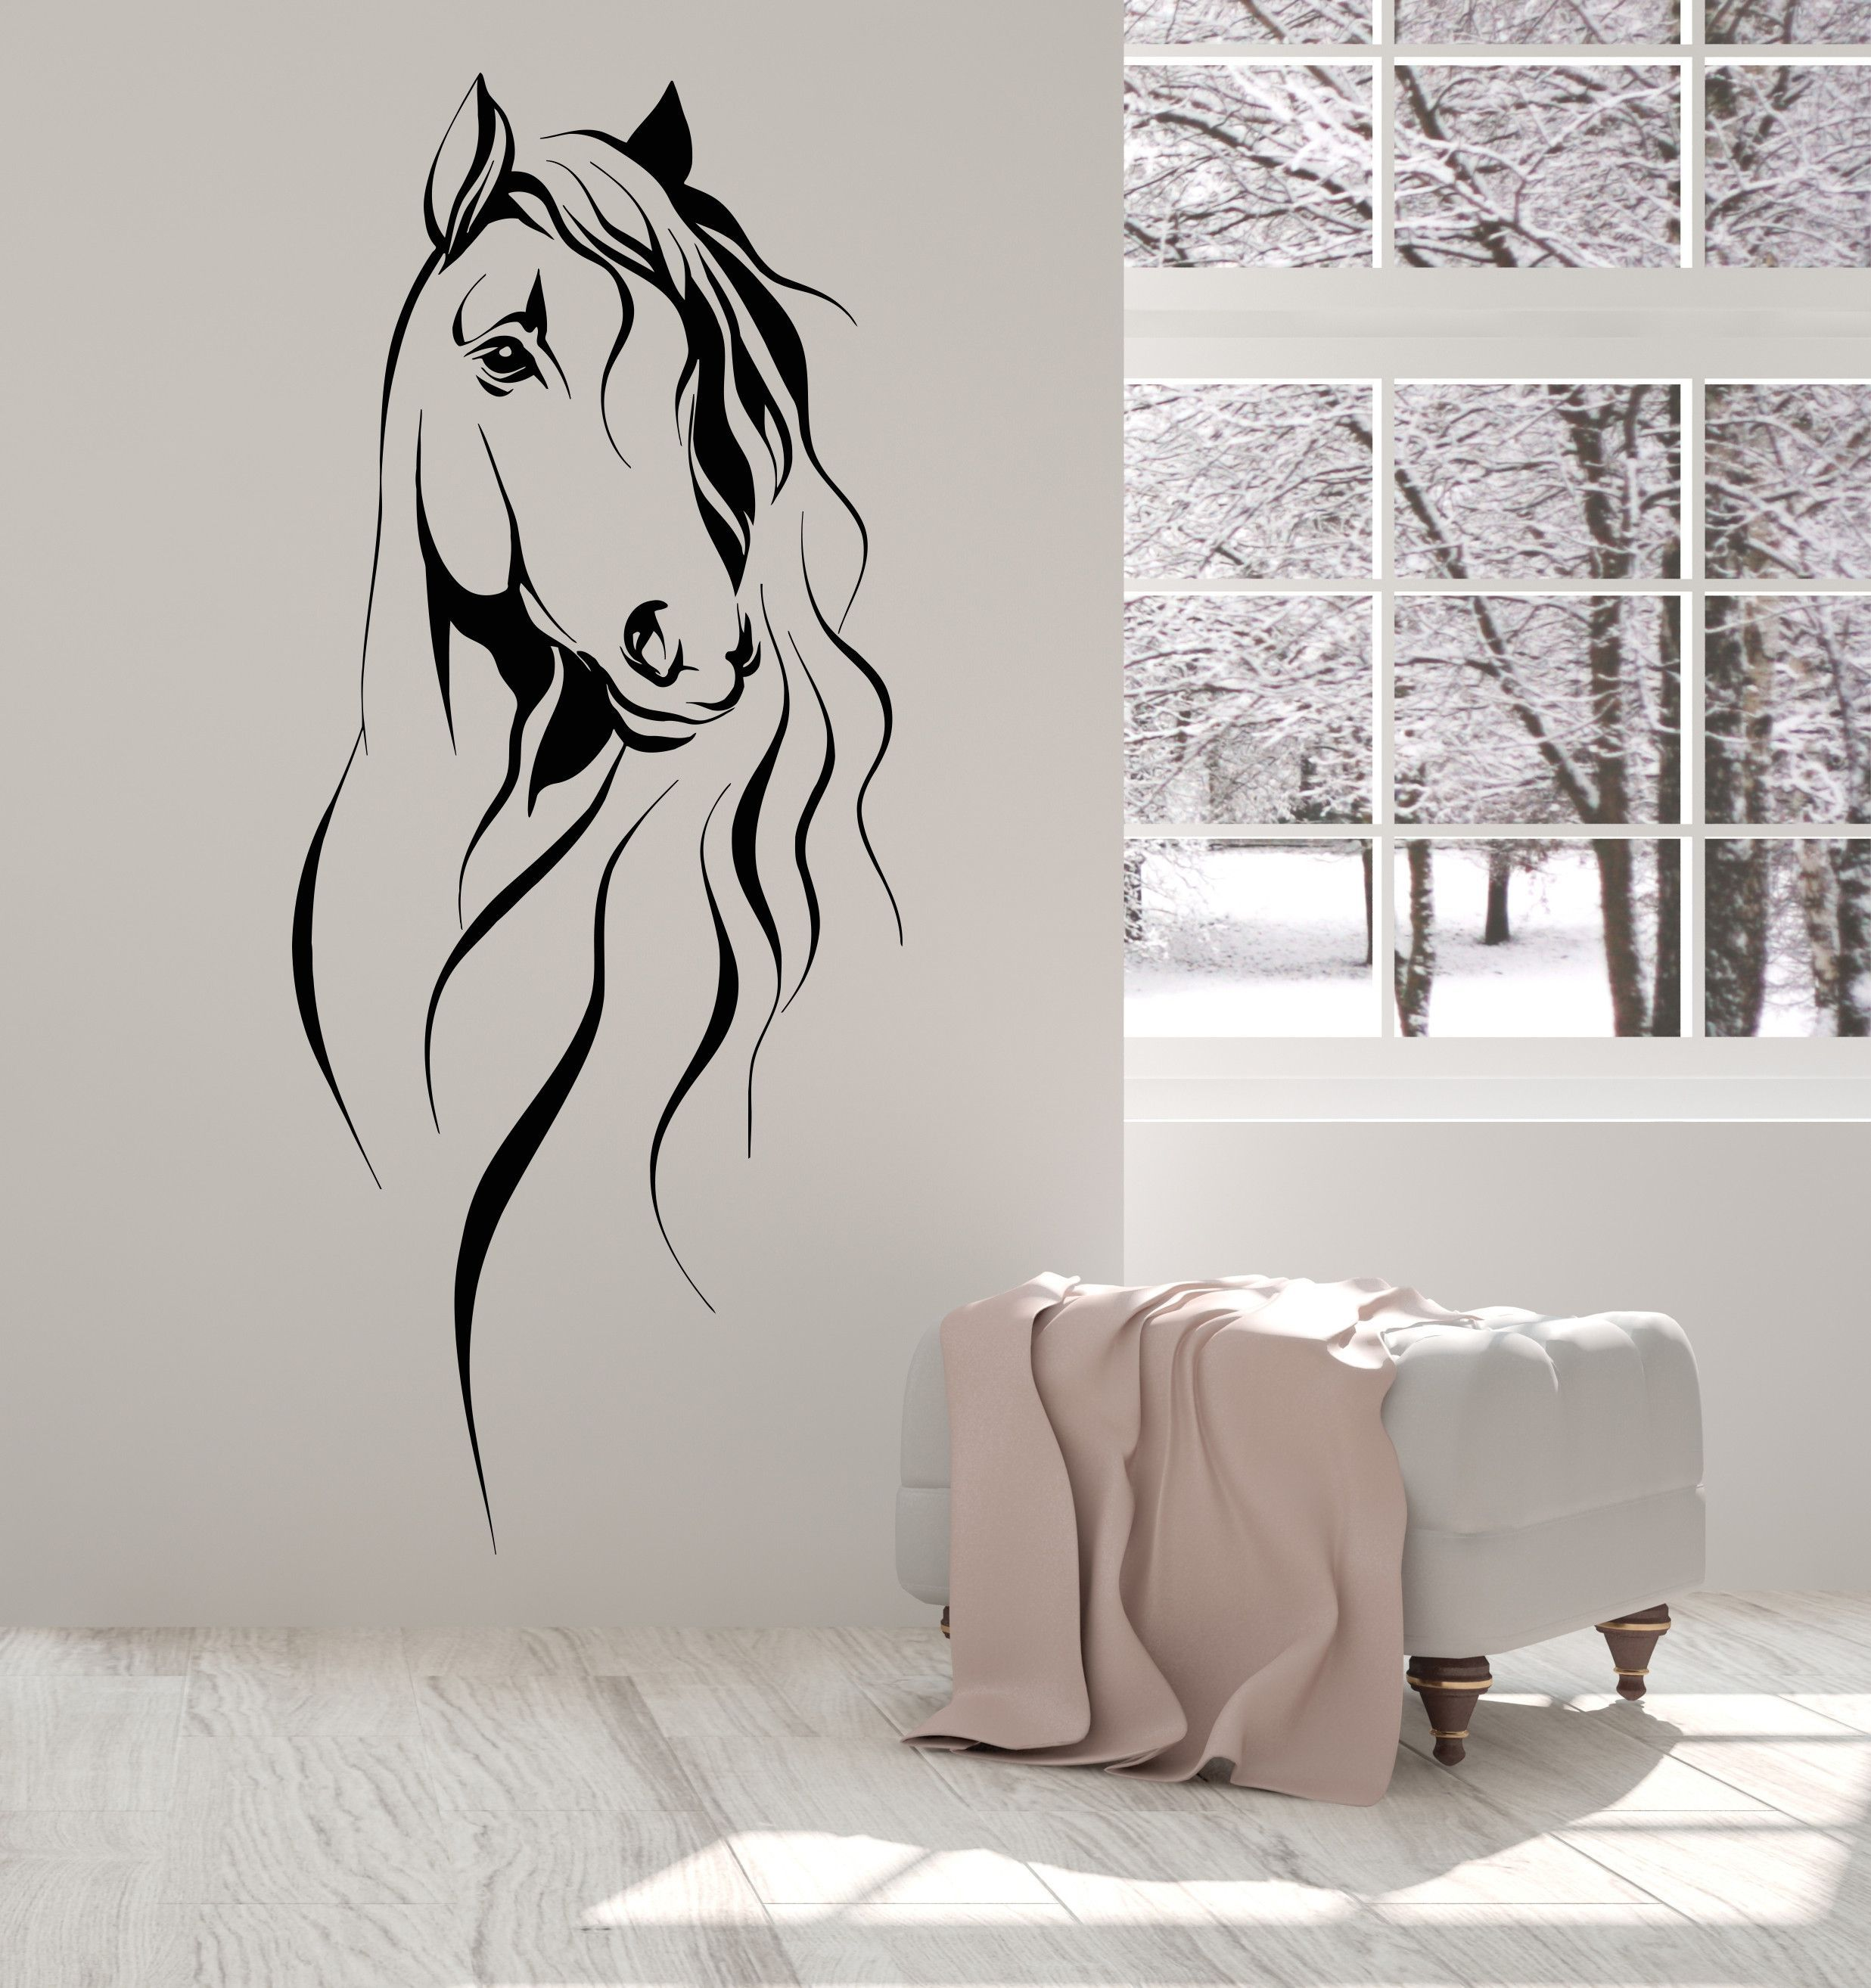 Vinyl Wall Decal Horse Head Pet Animal Art Decor Stickers Unique Gift 1393ig Wall Decor Stickers Horse Themed Bedrooms Vinyl Wall Decals